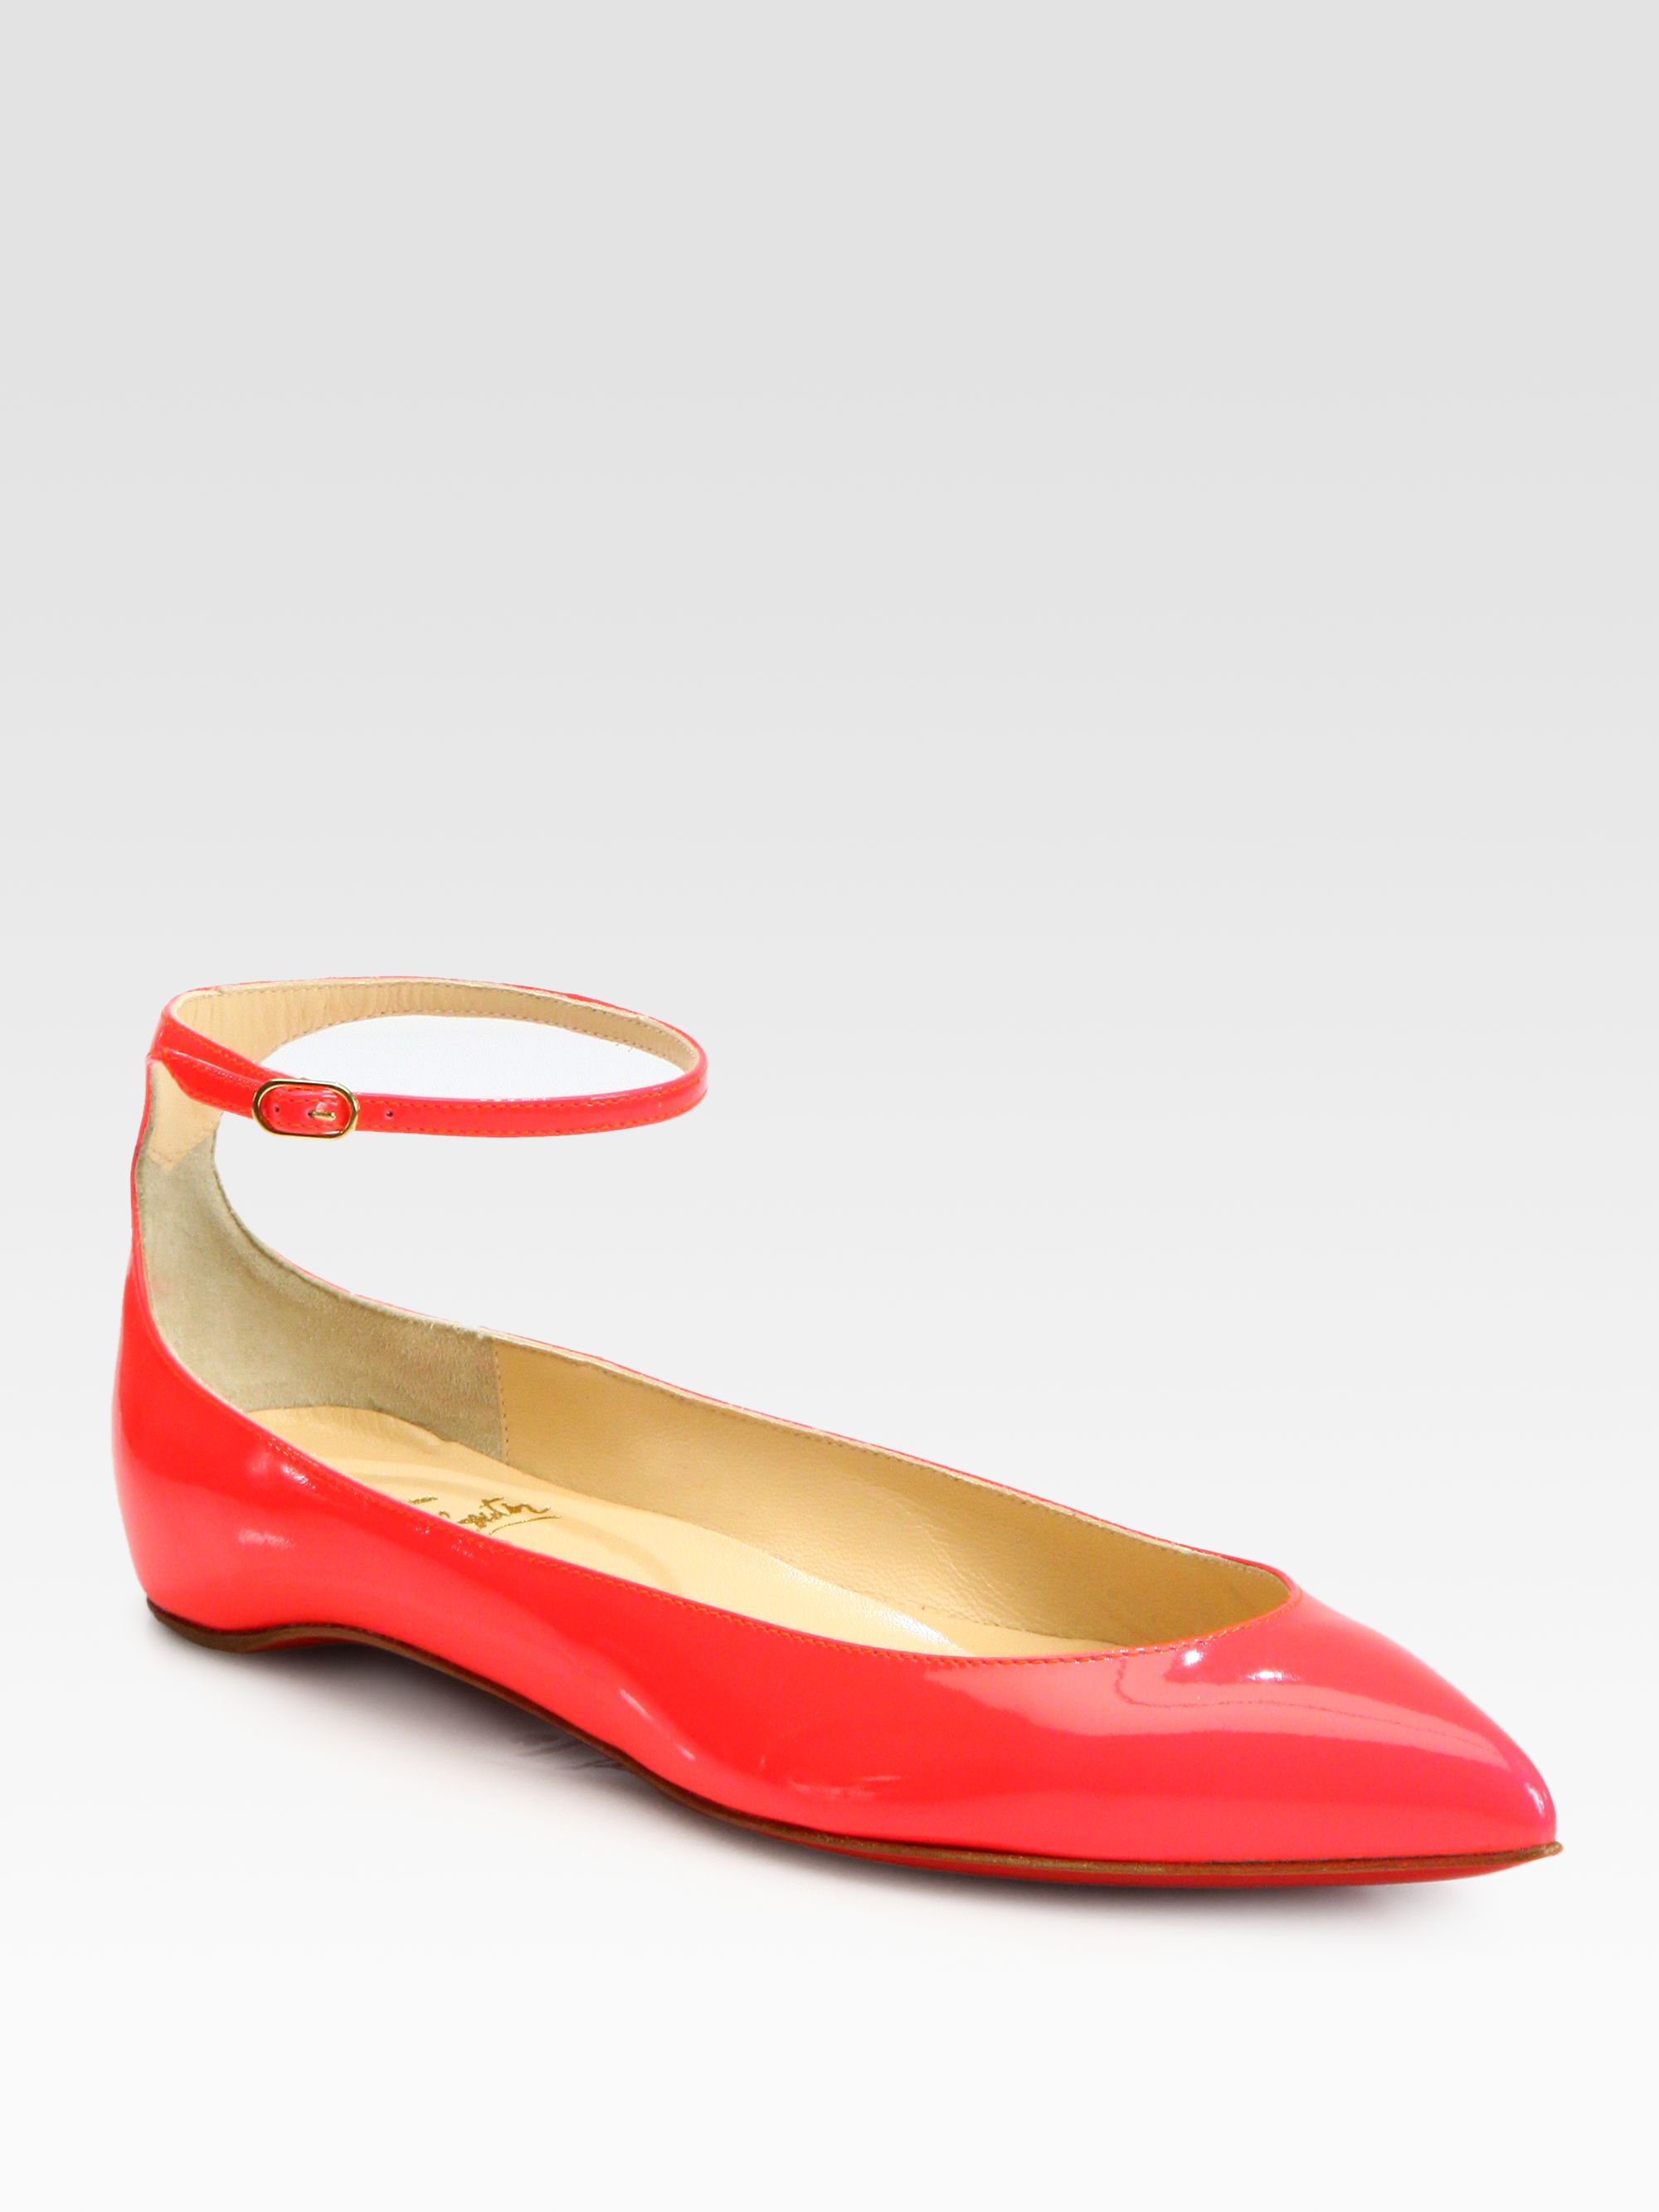 c4c24ad3a5d Lyst - Christian Louboutin Mrs H Patent Leather Ankle Strap Ballet ...